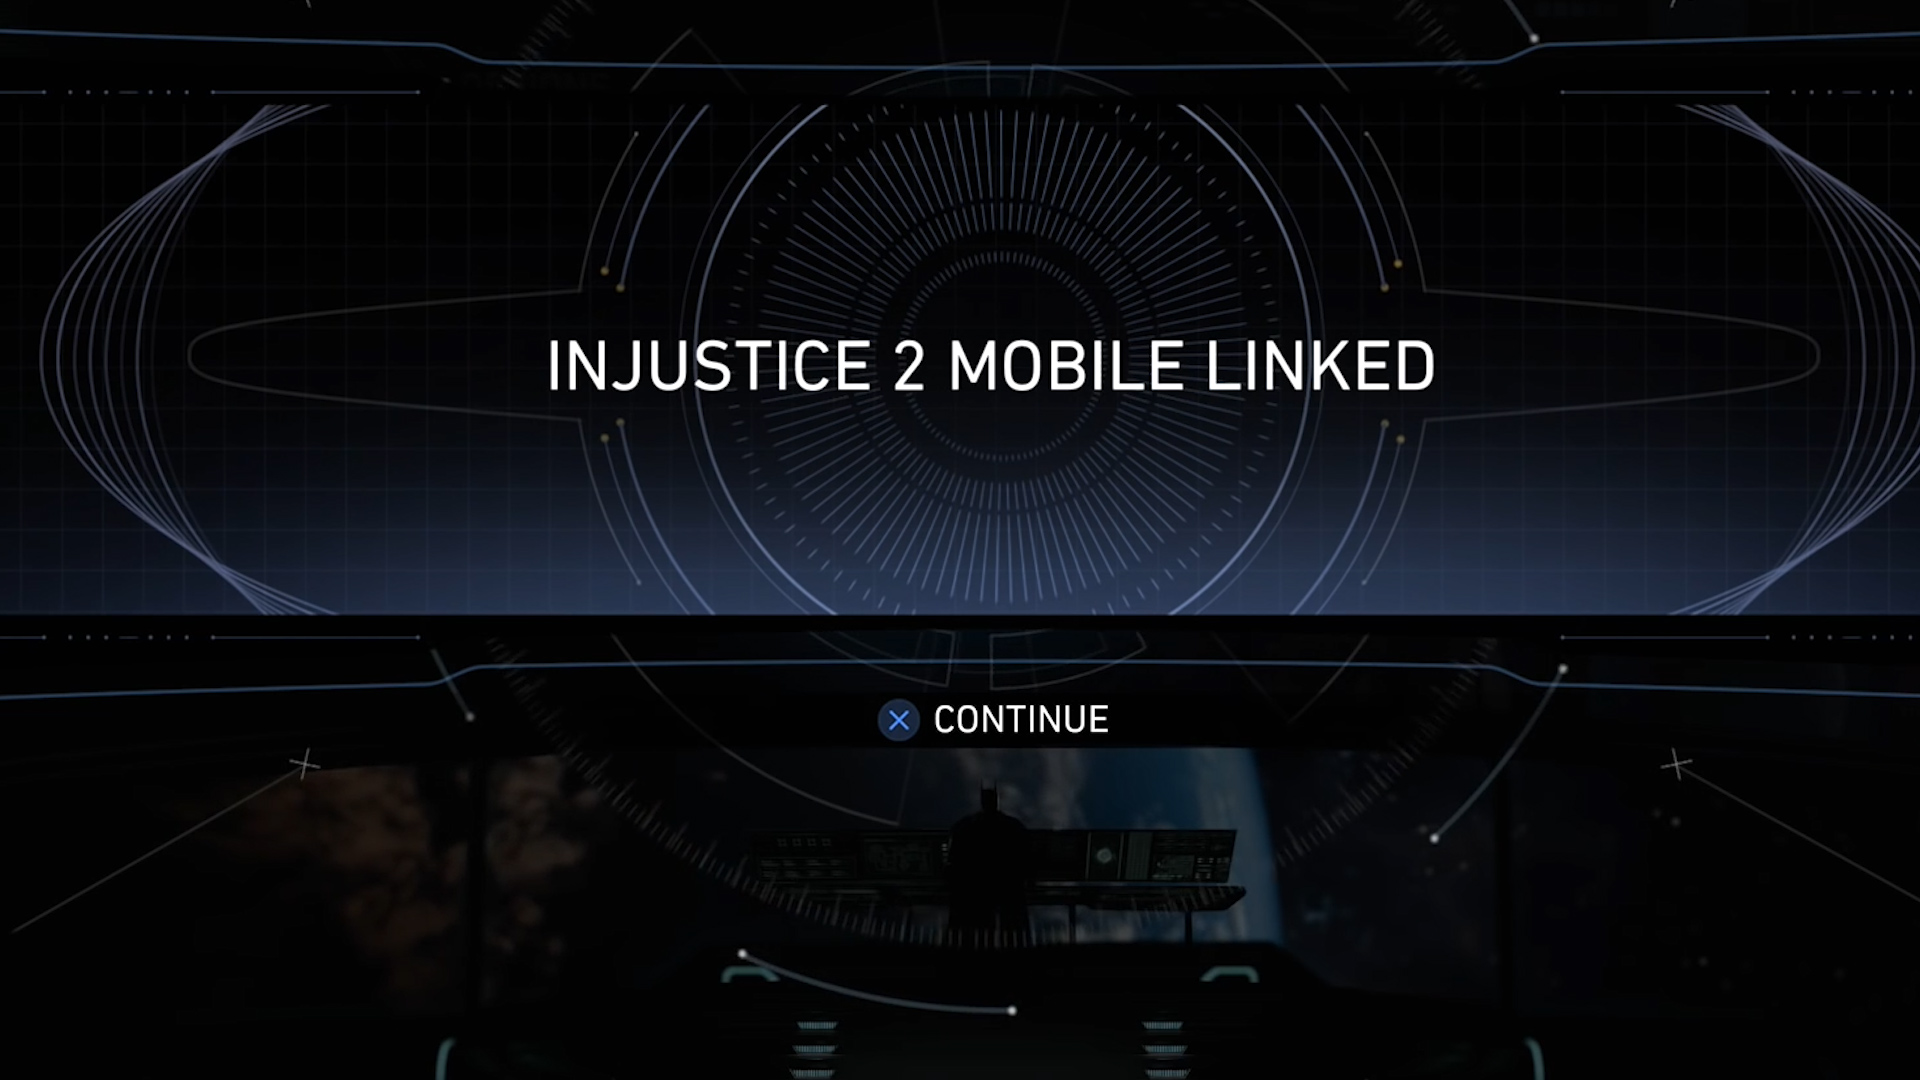 Injustice 2 Mobile Game: How to Link Mobile to Console